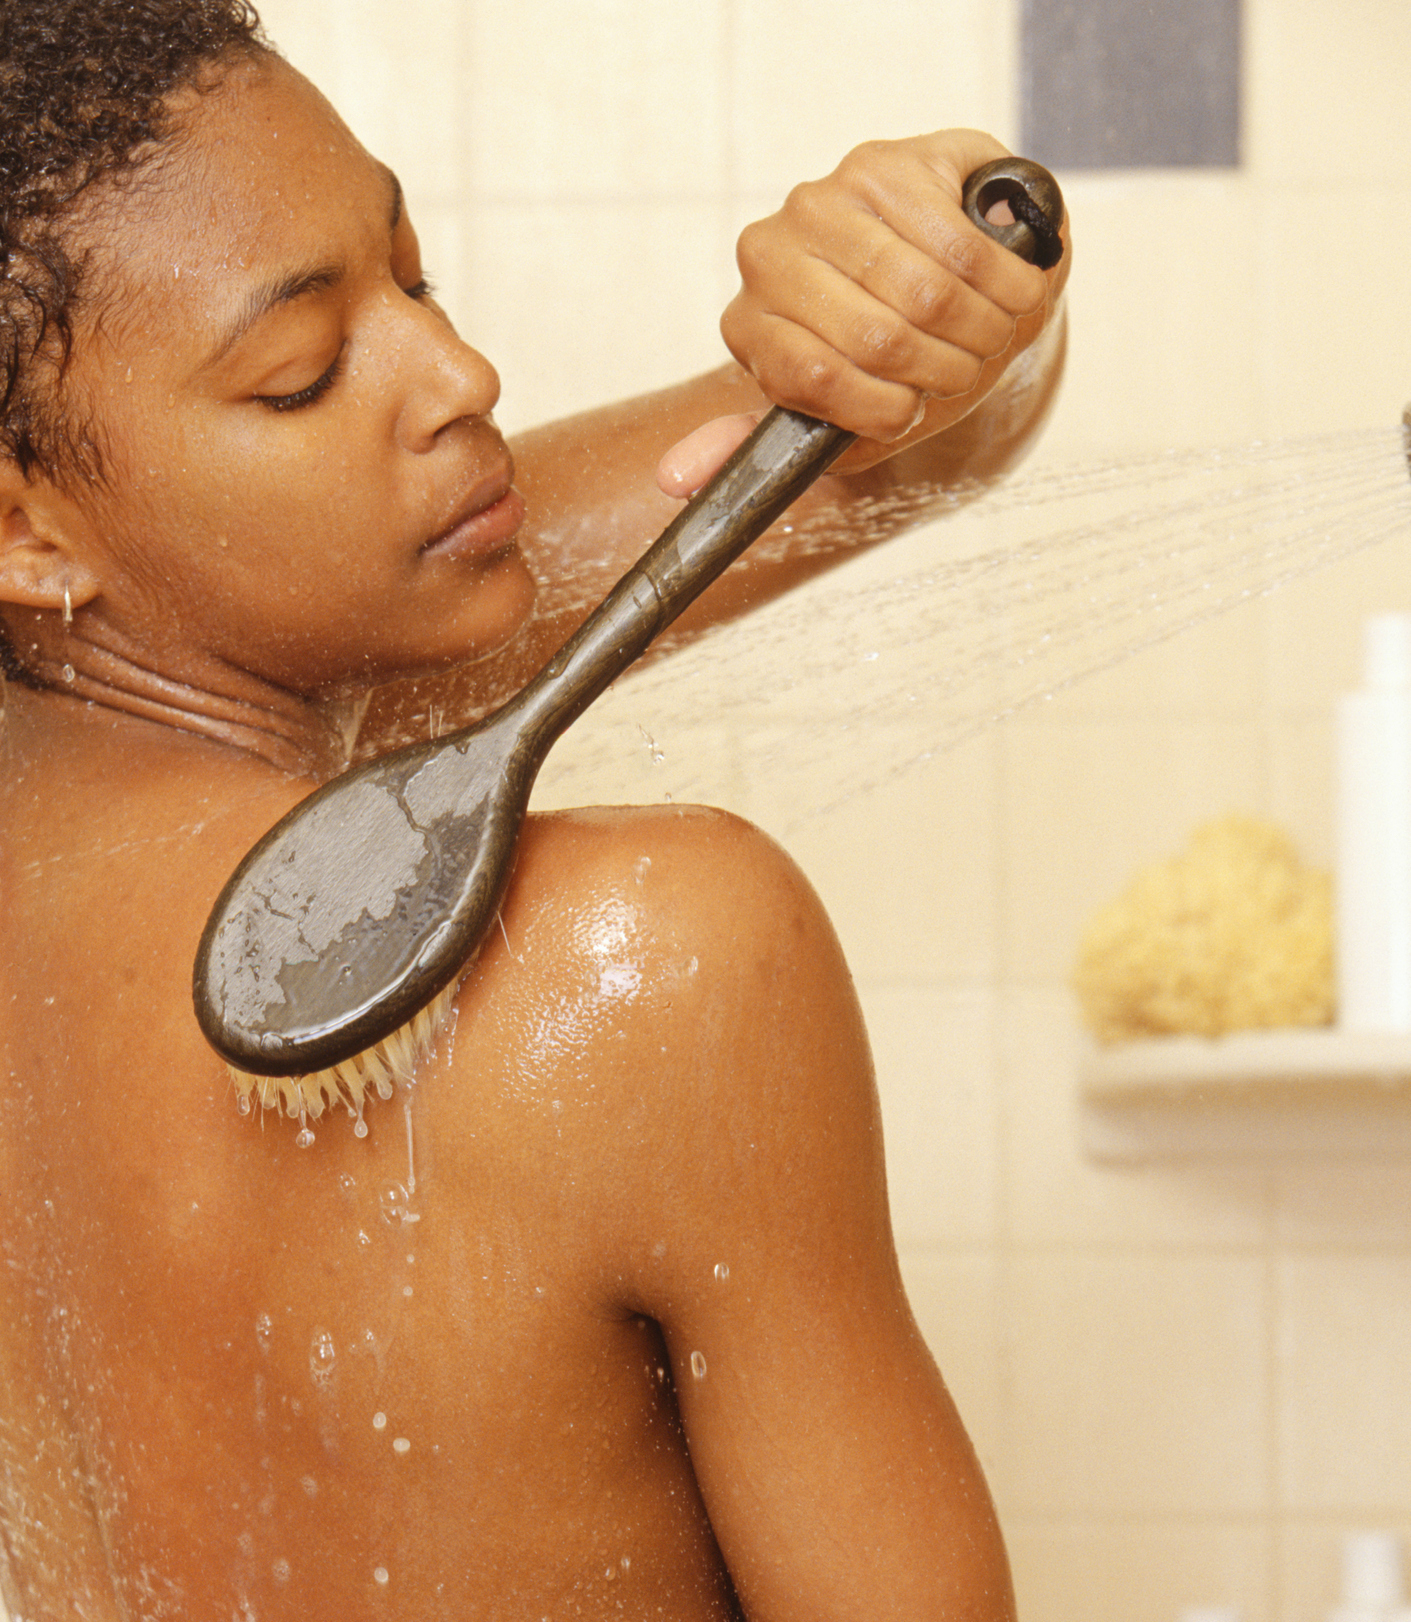 Common mistakes people make in the shower